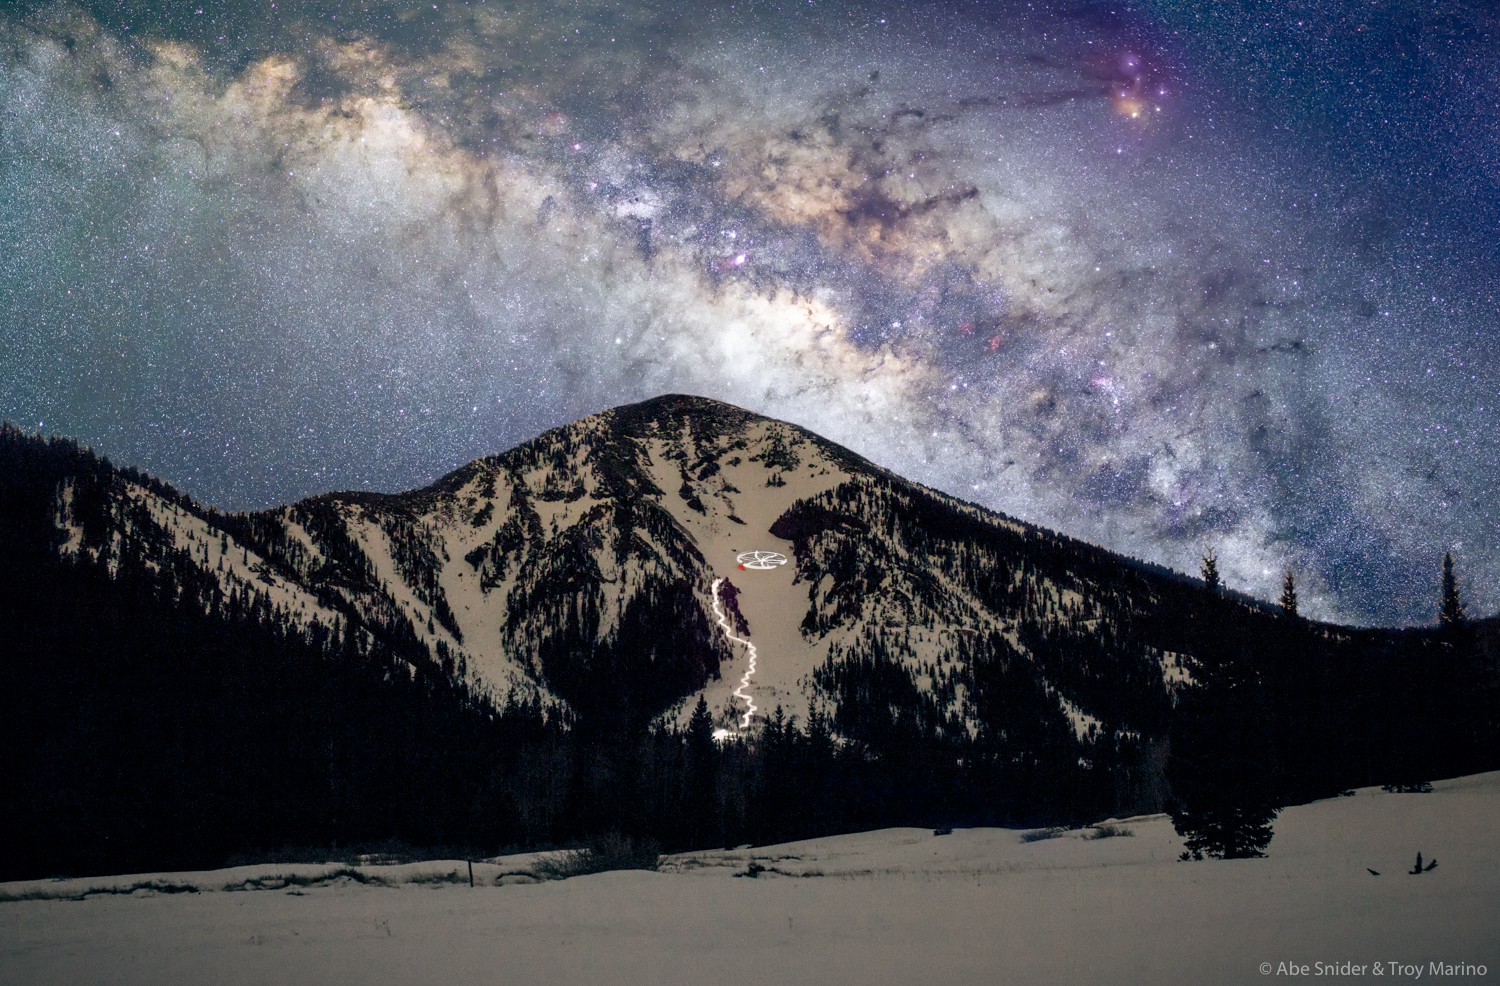 The Milky Way and Fremont Peak of the San Francisco Peaks in Northern Arizona.